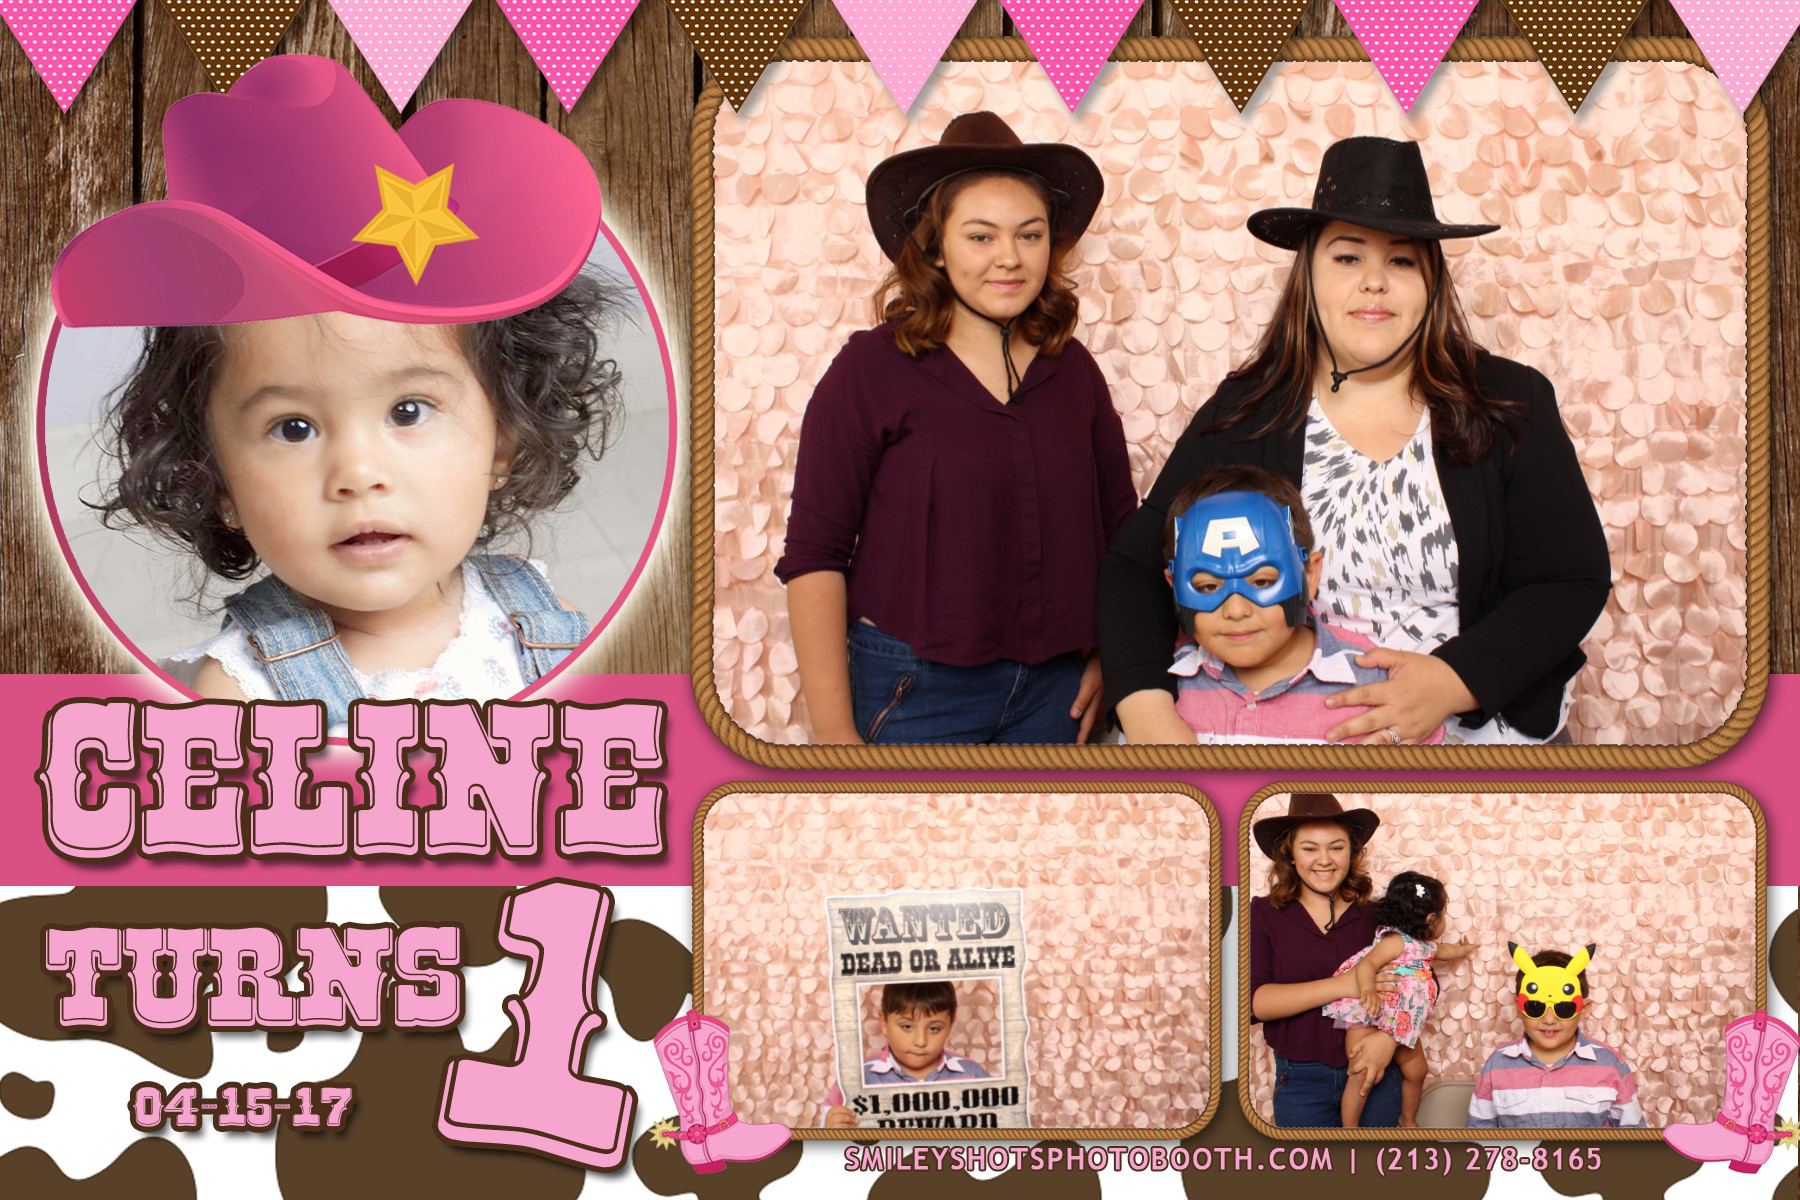 Celine turns 1 Smiley Shots Photo Booth Photobooth (1).png